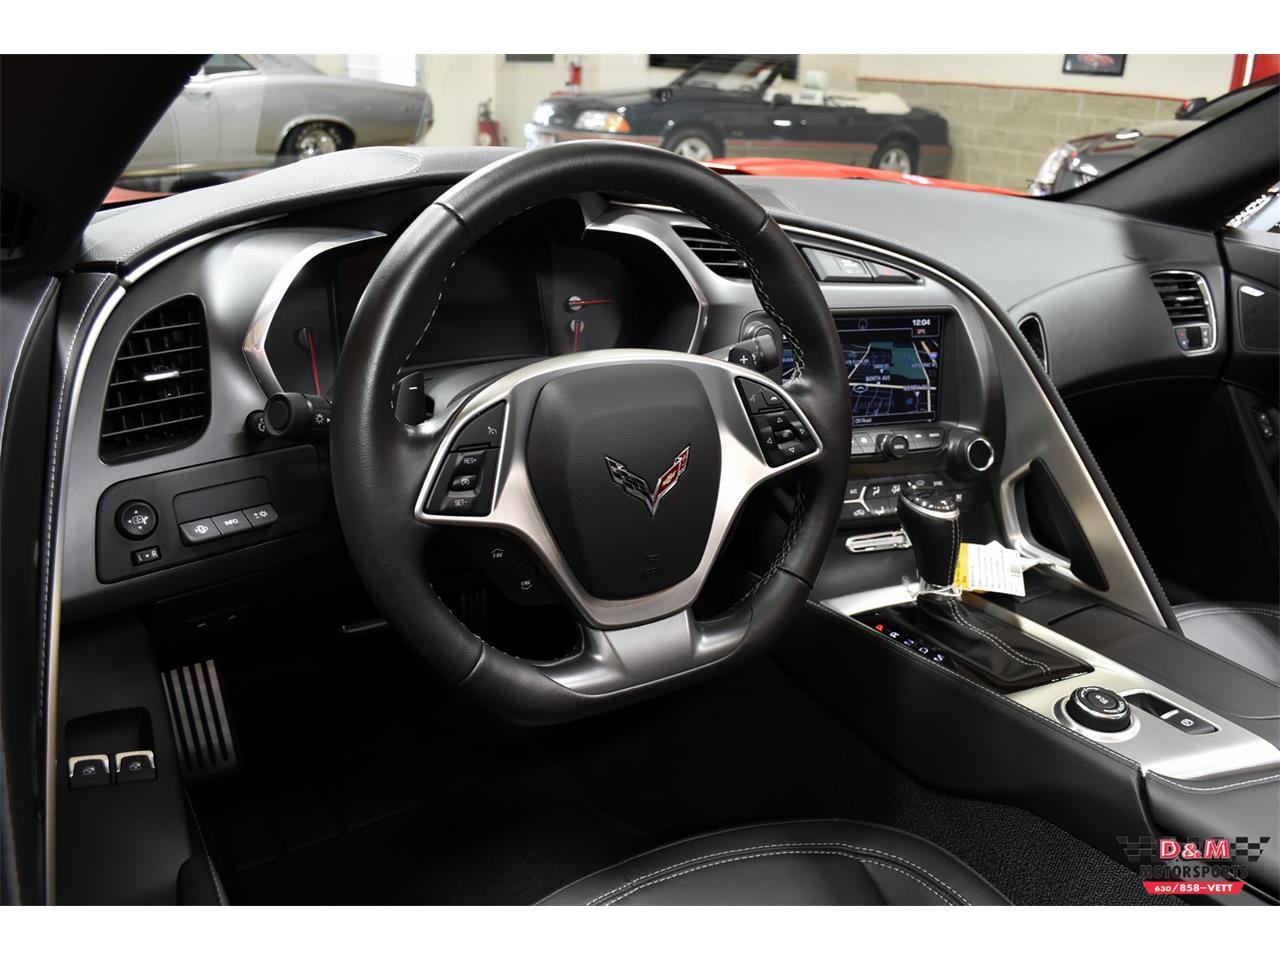 Large Picture of 2018 Corvette - $61,995.00 Offered by D & M Motorsports - PWM3